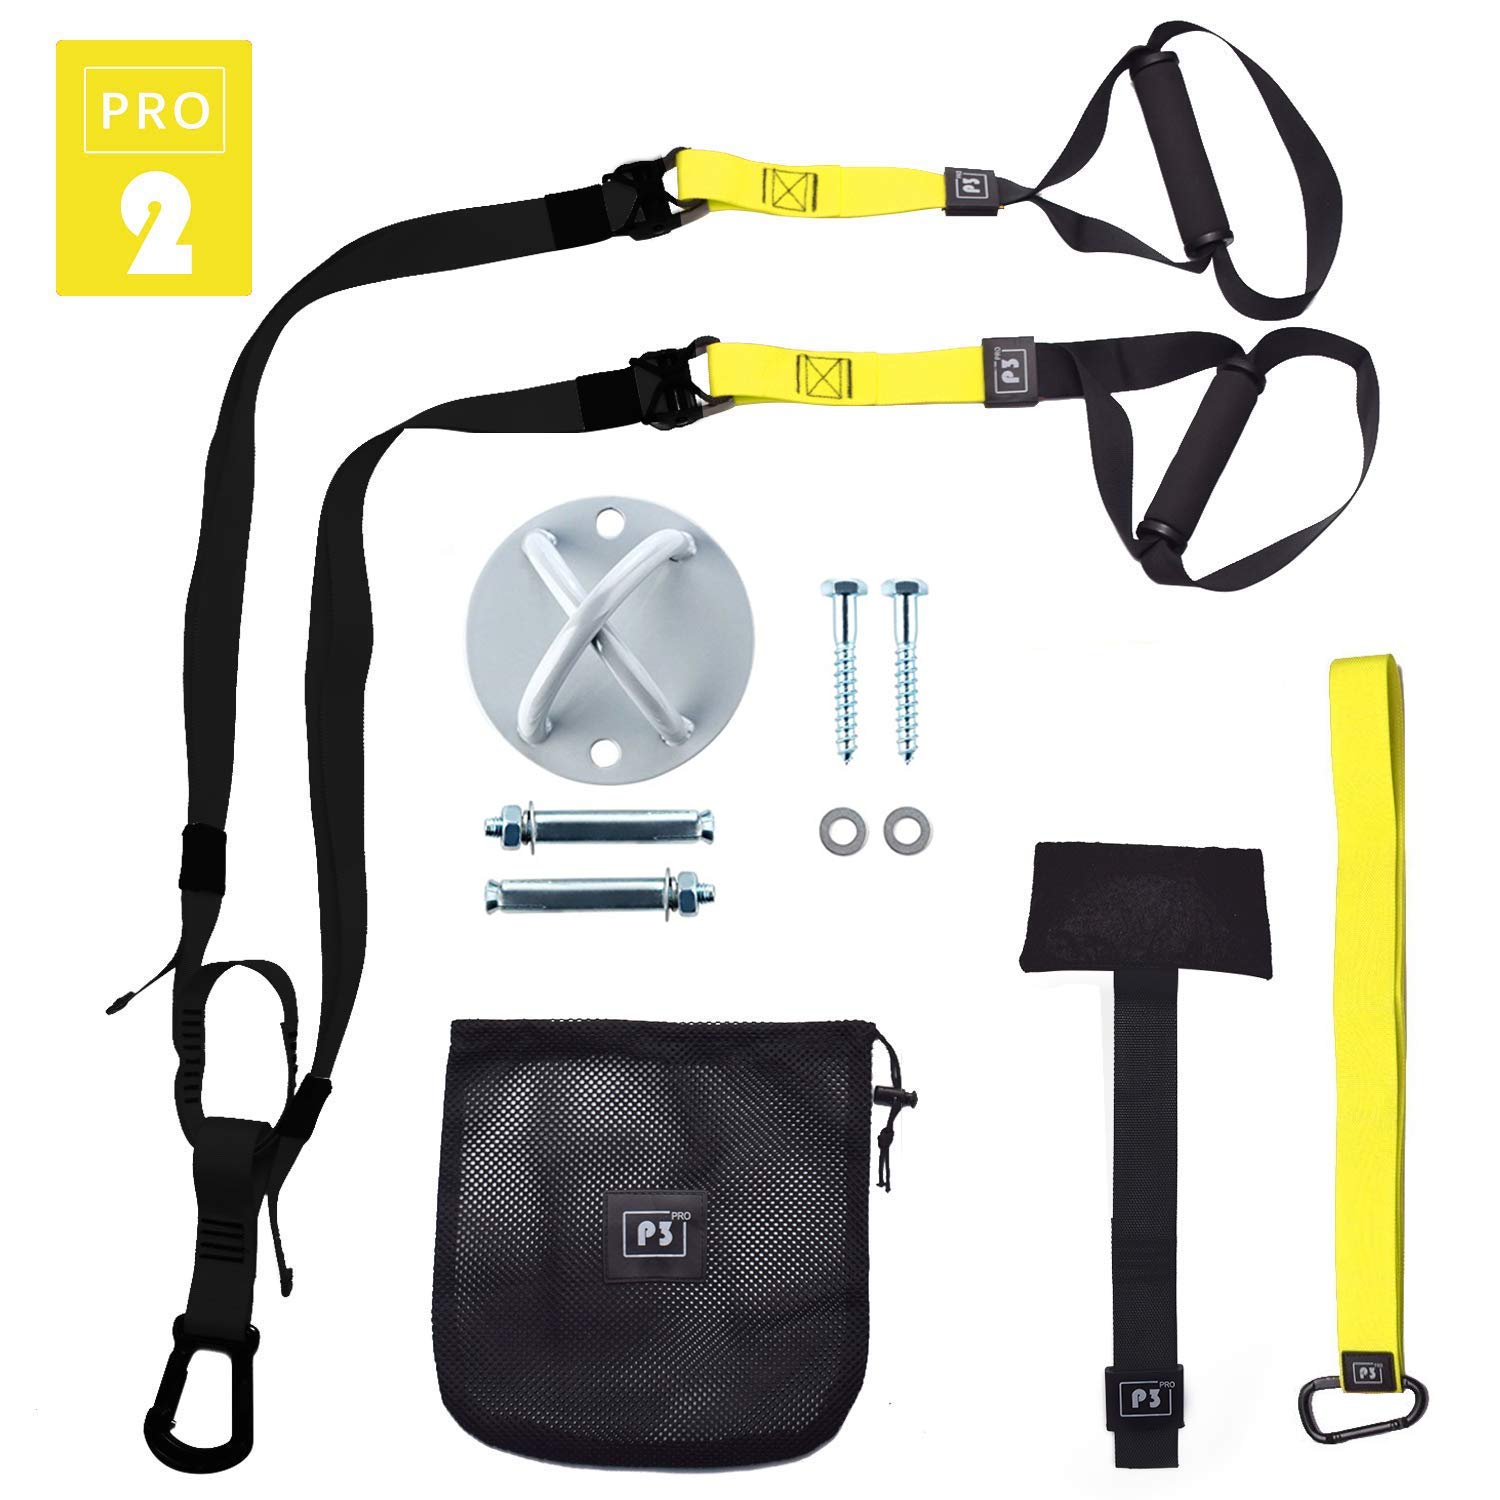 O RLY Schlingentrainer Sling Trainer Bodyweight Fitness Resistance Straps Trainer (P3 Pro 2 + Wall Mount)